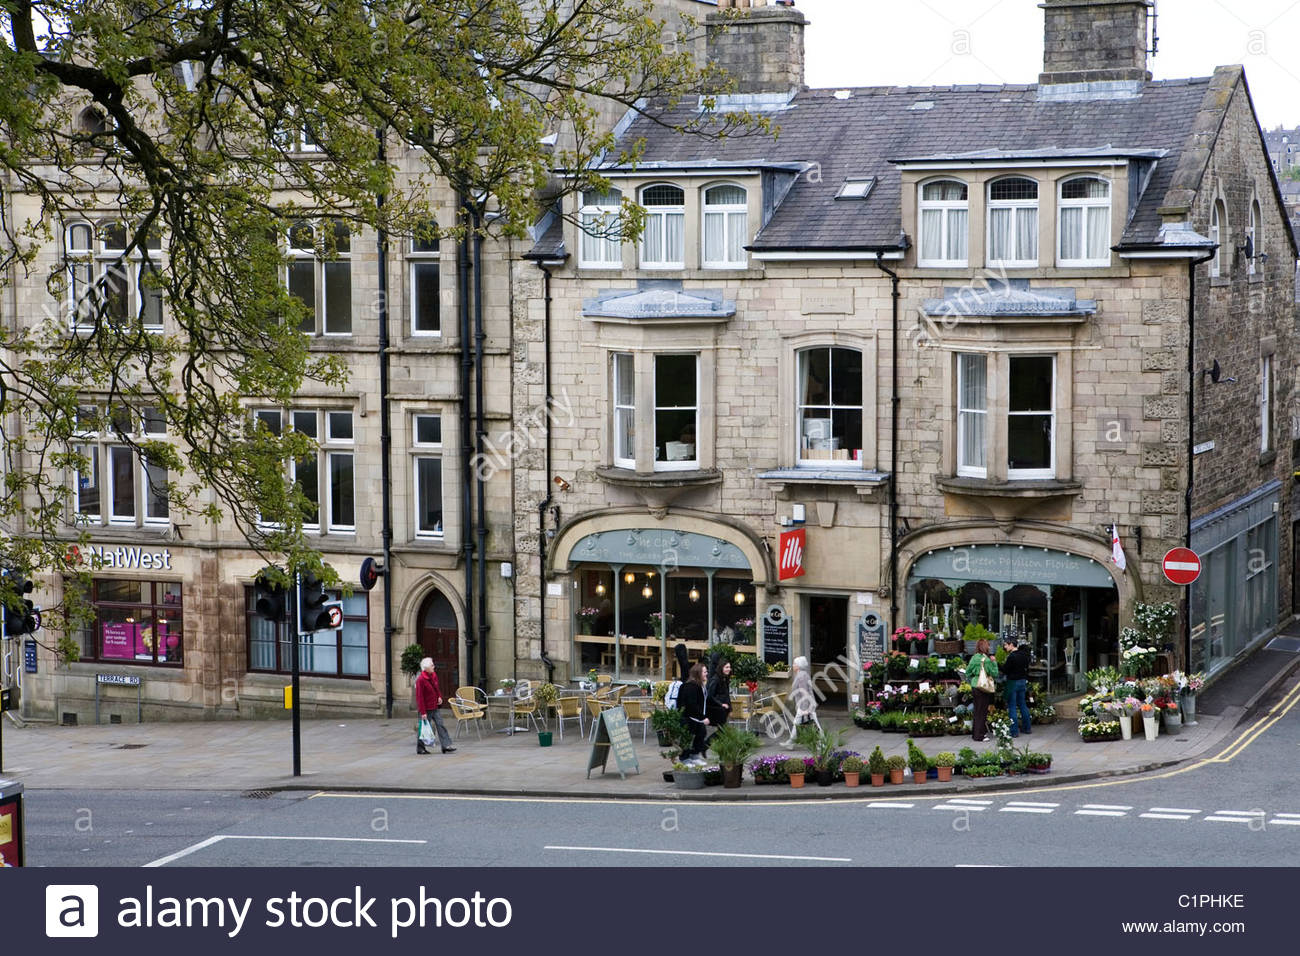 England, Derbyshire, Buxton, shops in town centre - Stock Image